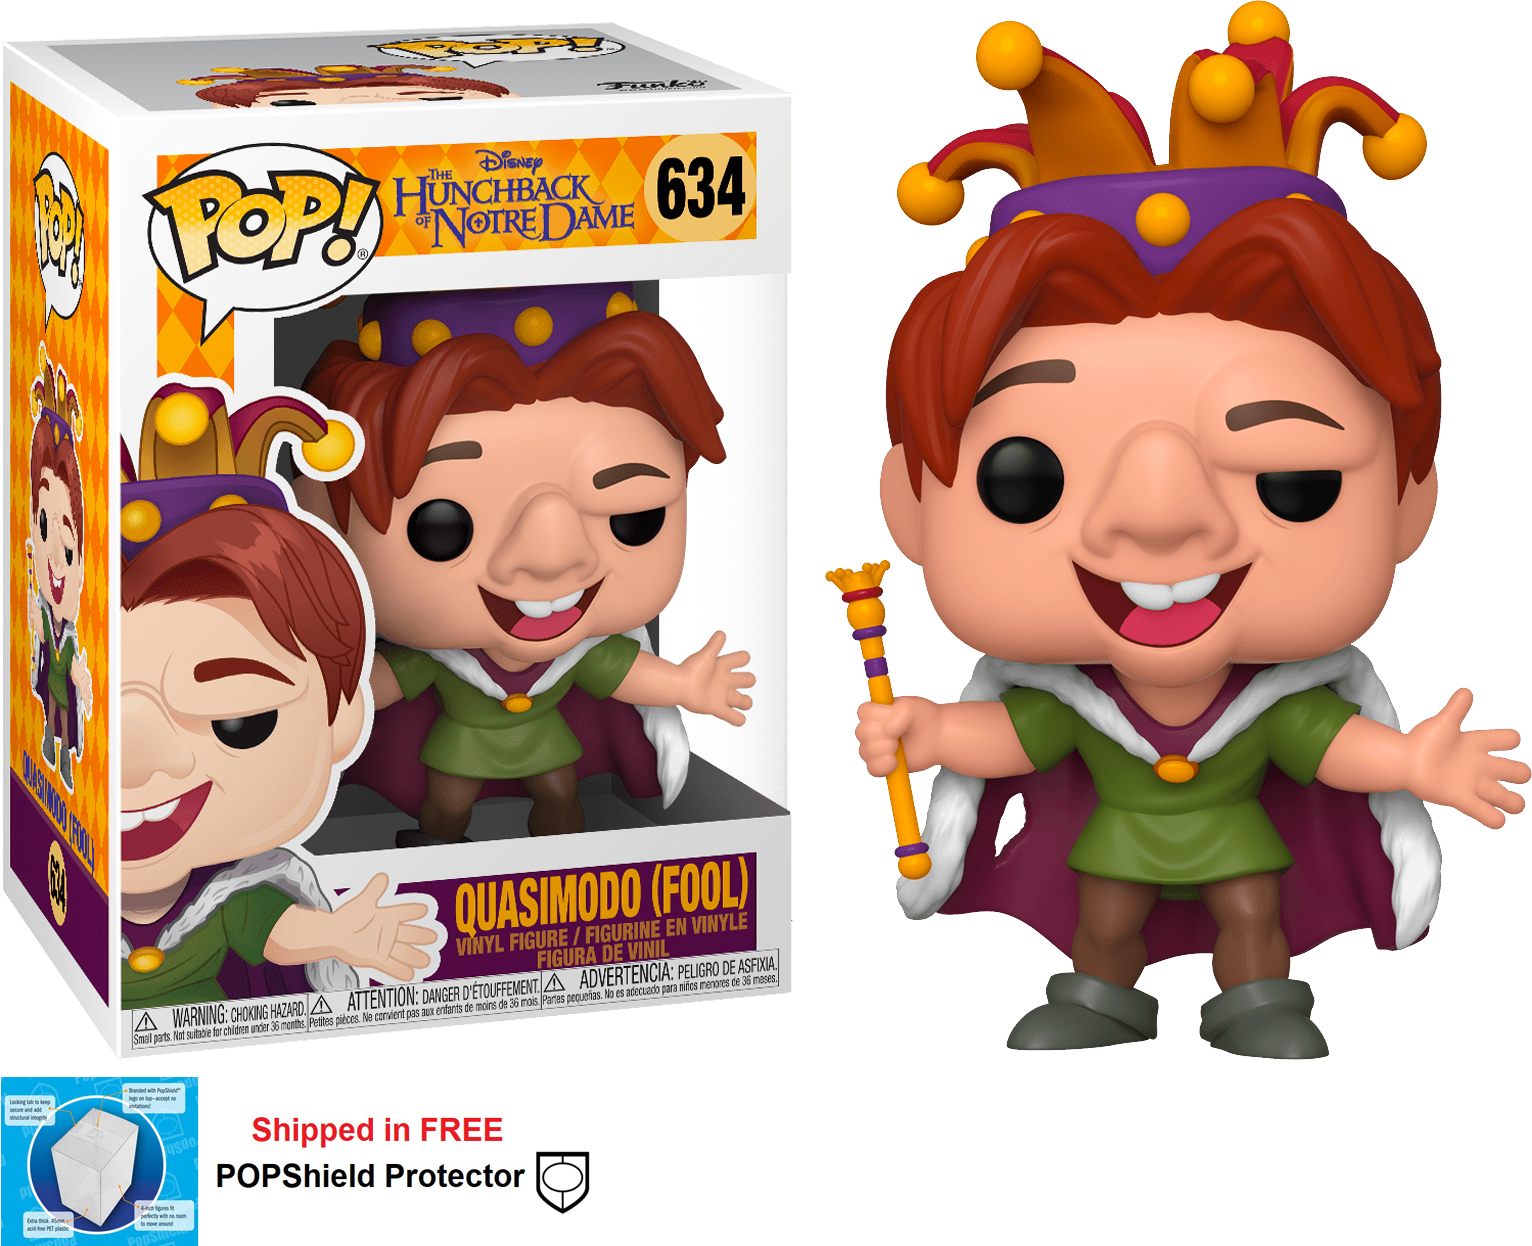 Funko POP Disney Hunchback of Notre Dame Quasimodo Fool #634